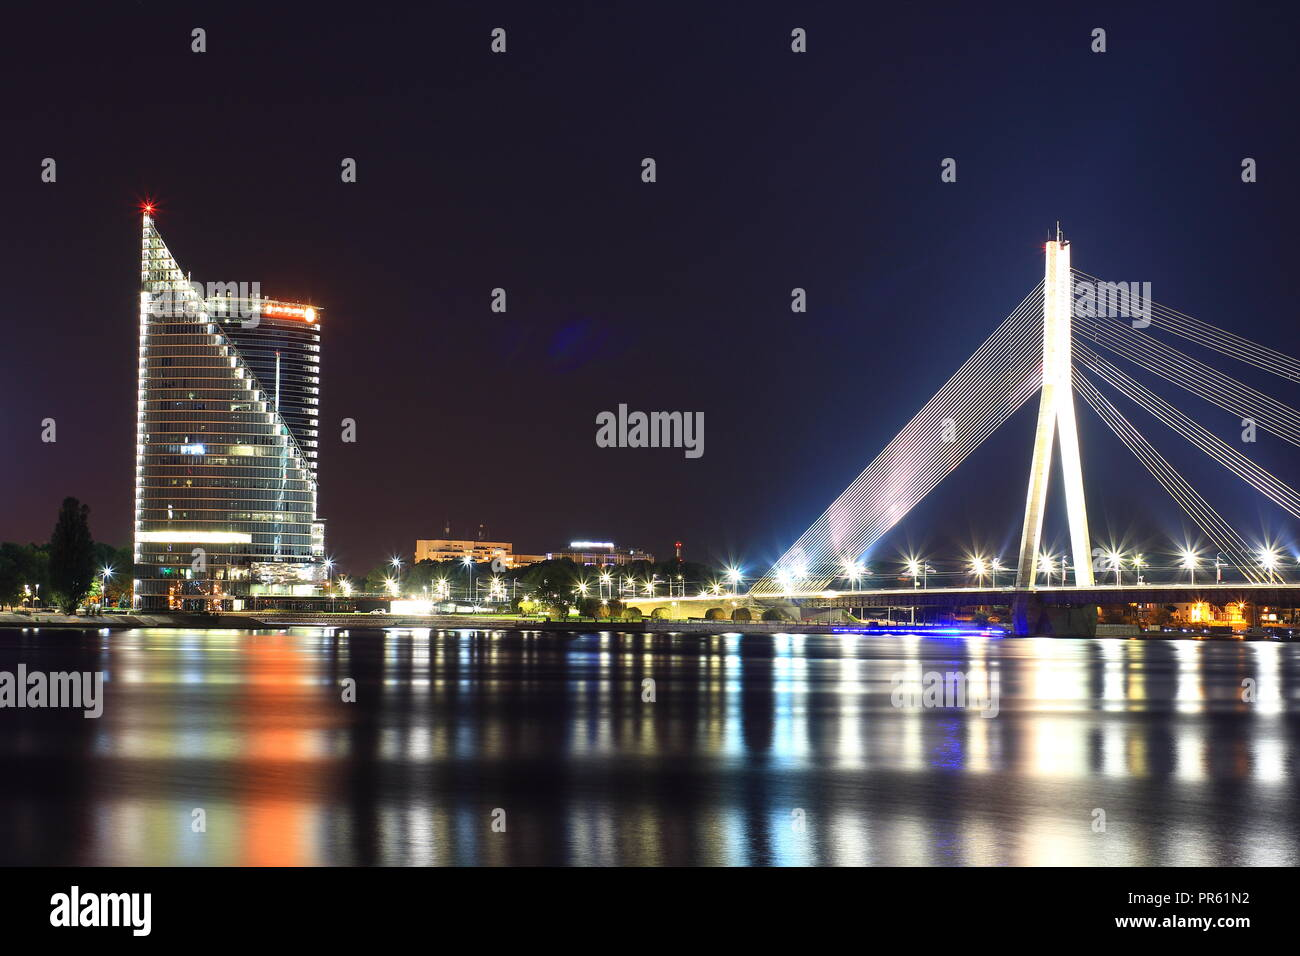 Vansu Bridge that crosses the river Daugava in Riga, the capital of Latvia. Latvians celebrates its 100 years of independence throughout the year 2018 - Stock Image